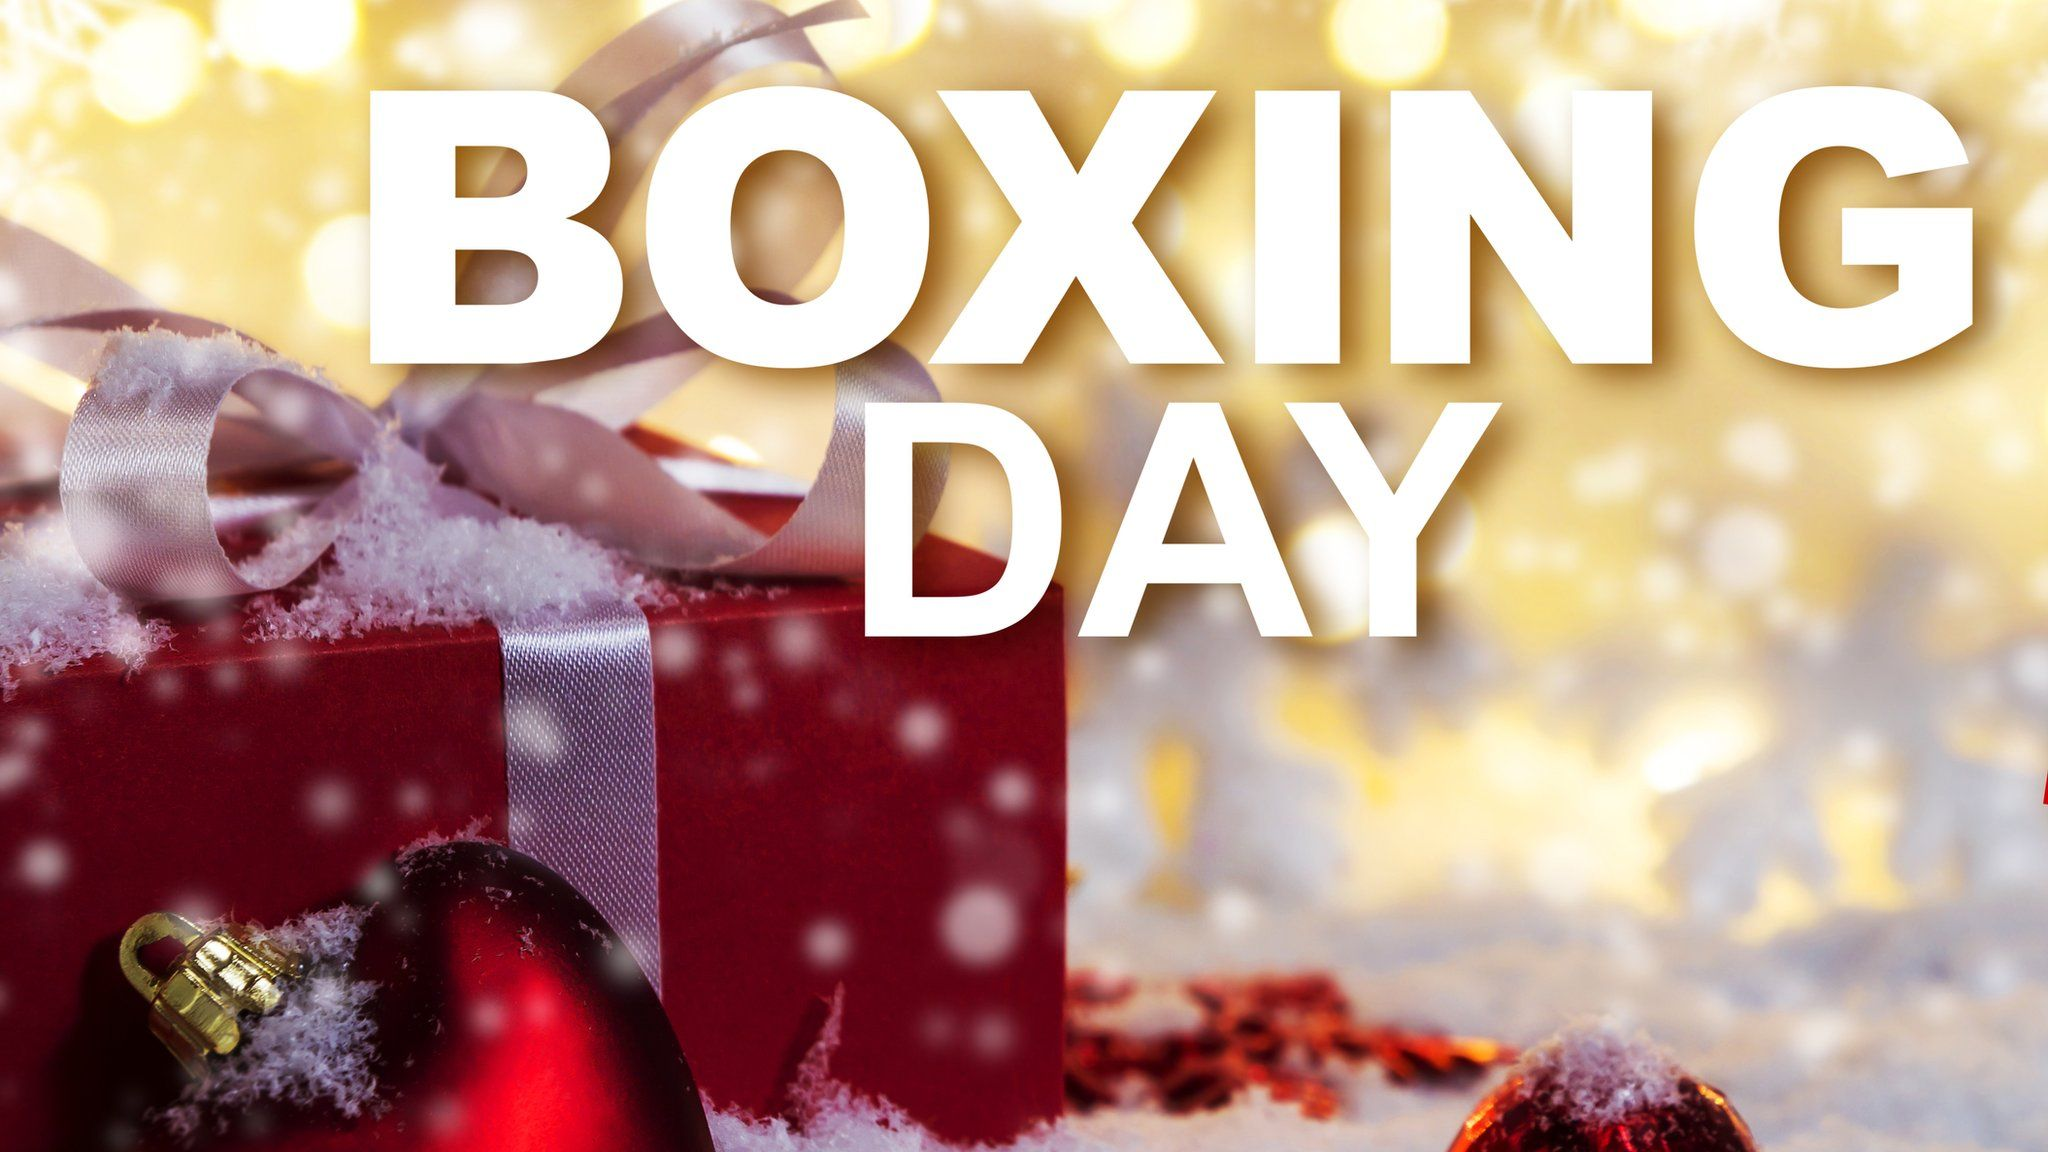 Why is it called Boxing Day? CBBC Newsround